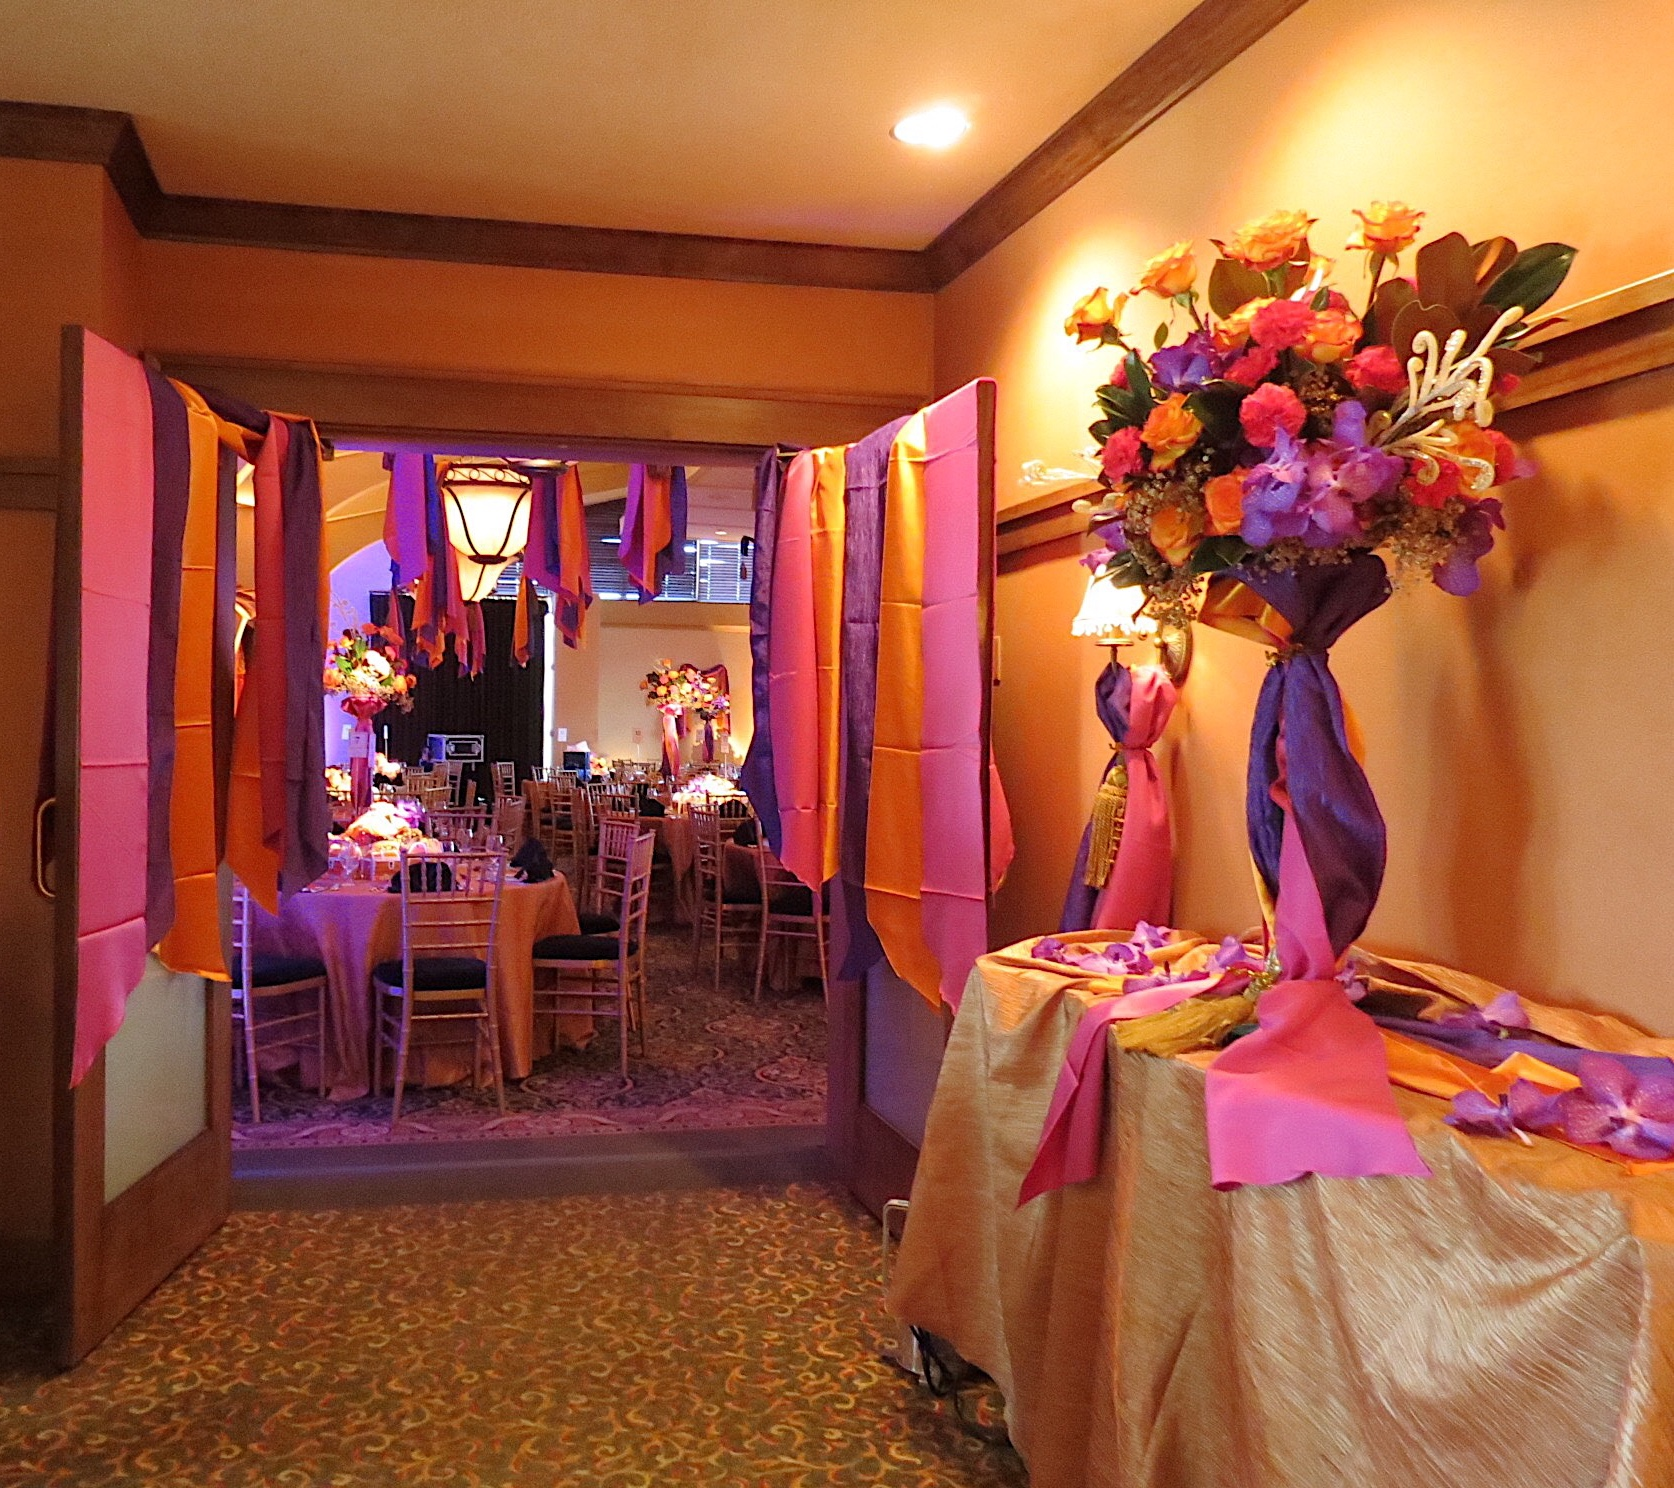 """Fill the Treasure Chest"" Fundraiser event for Boys & Girls Club of Greater Peoria at Mt. Hawley Country Club // Lighting by Extreme DJs and Lighting // Florals, Draping, and Decor by Michele's"